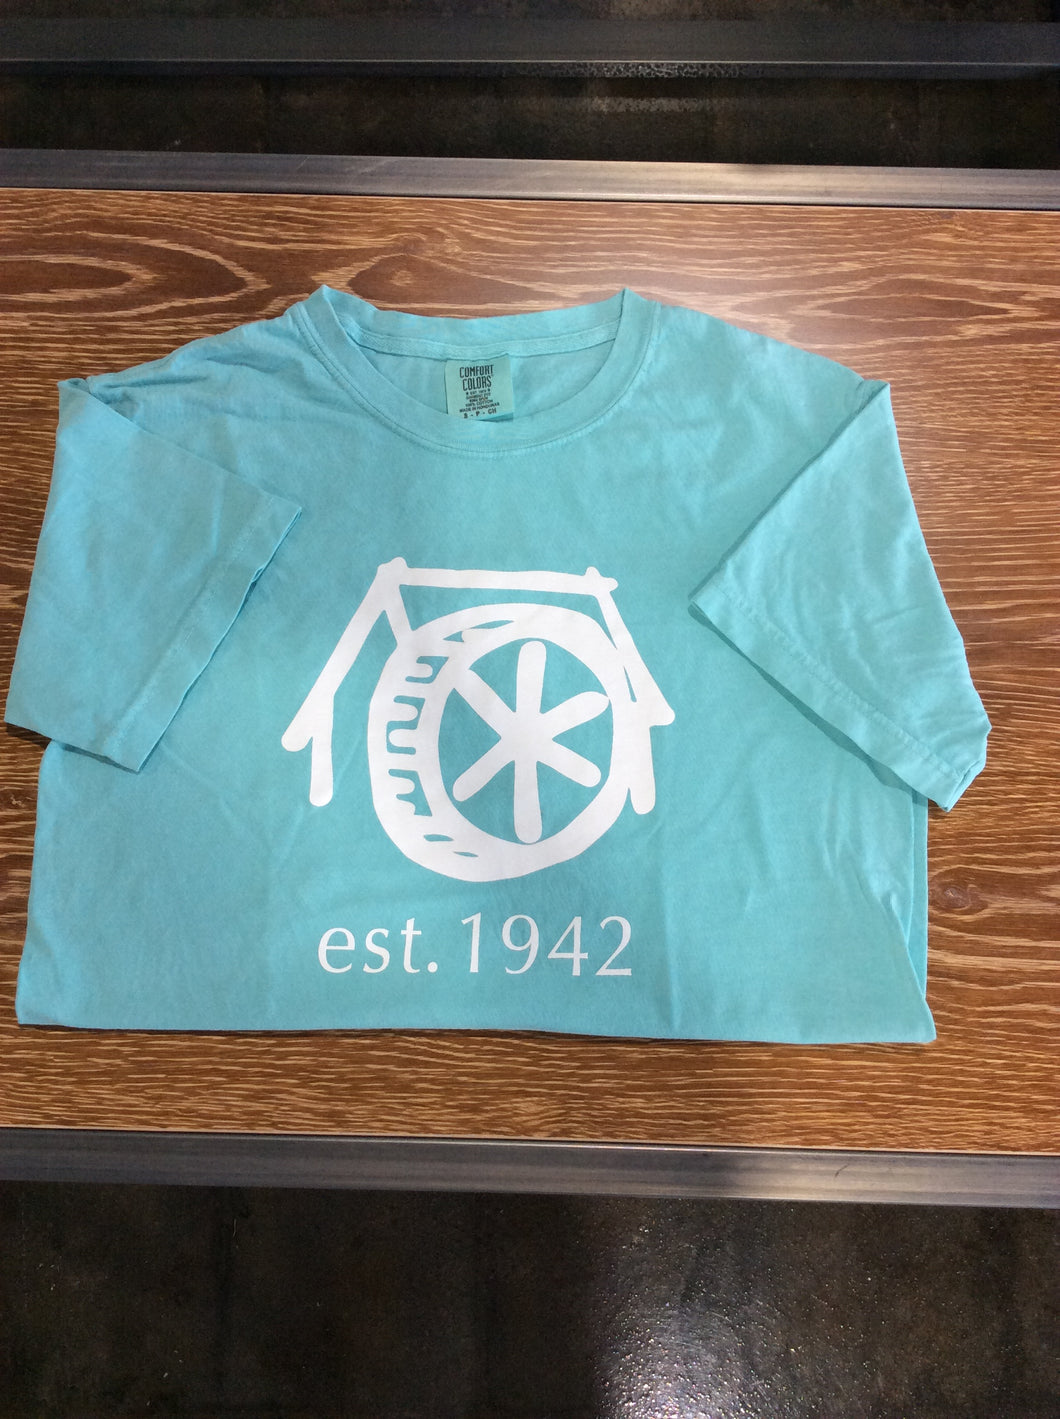 Mtn Brook Aqua Comfort Colors T-Shirt with Old Mil and